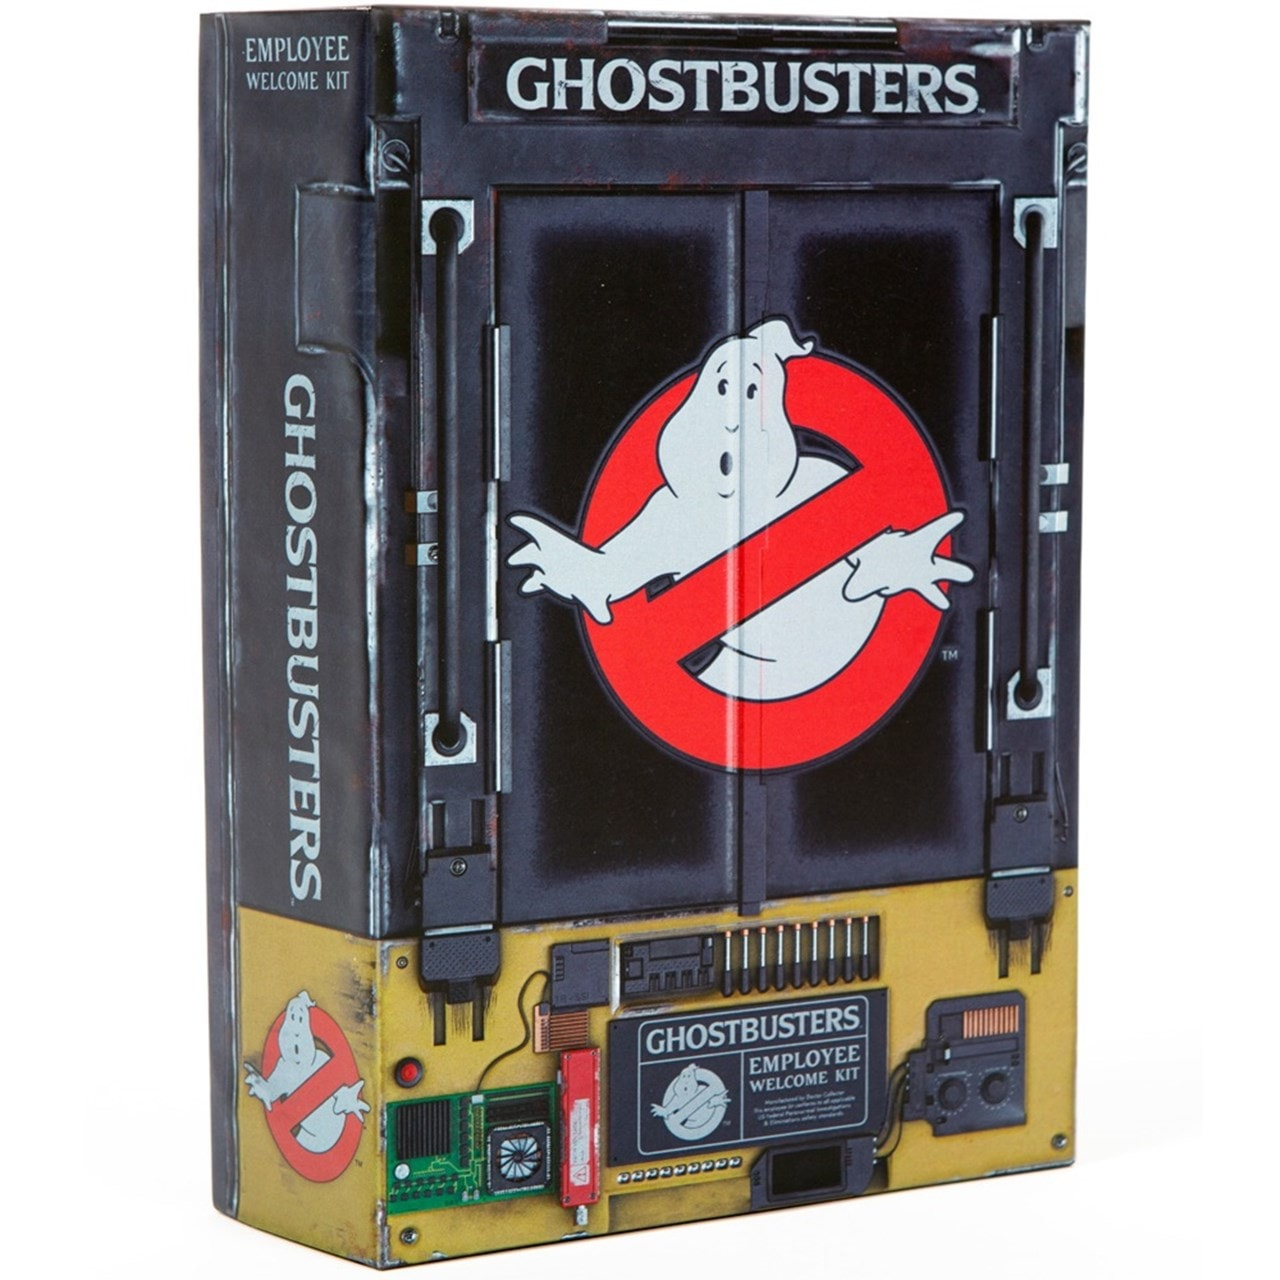 Ghostbusters Employee Welcome Kit: Black Edition - 1